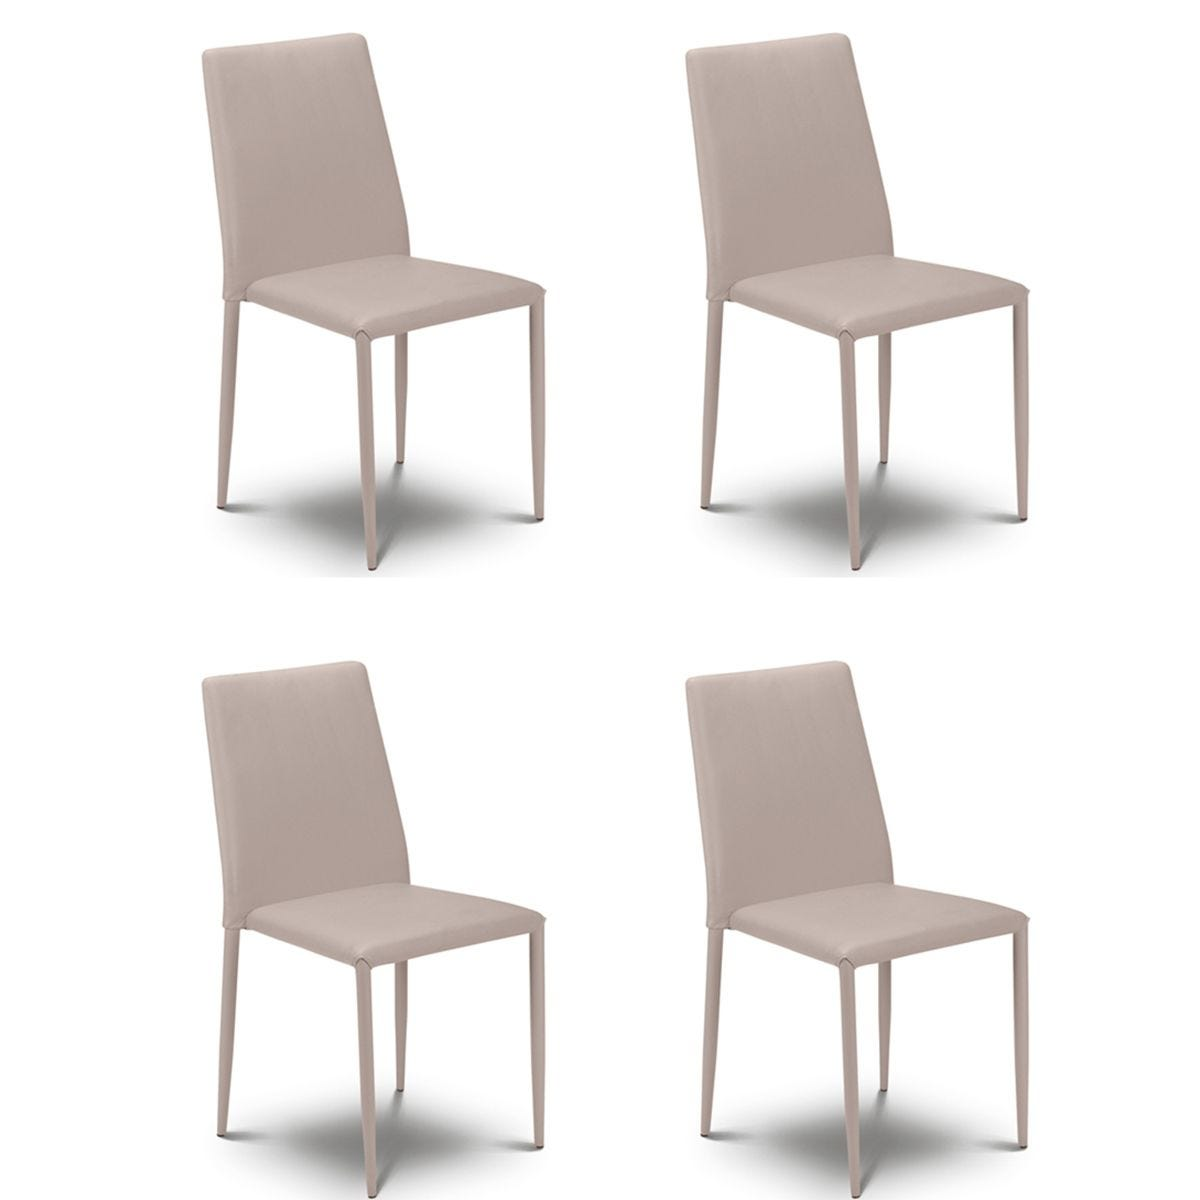 Julian Bowen Jazz Stacking Chair 4 Pack - Grey Faux Leather